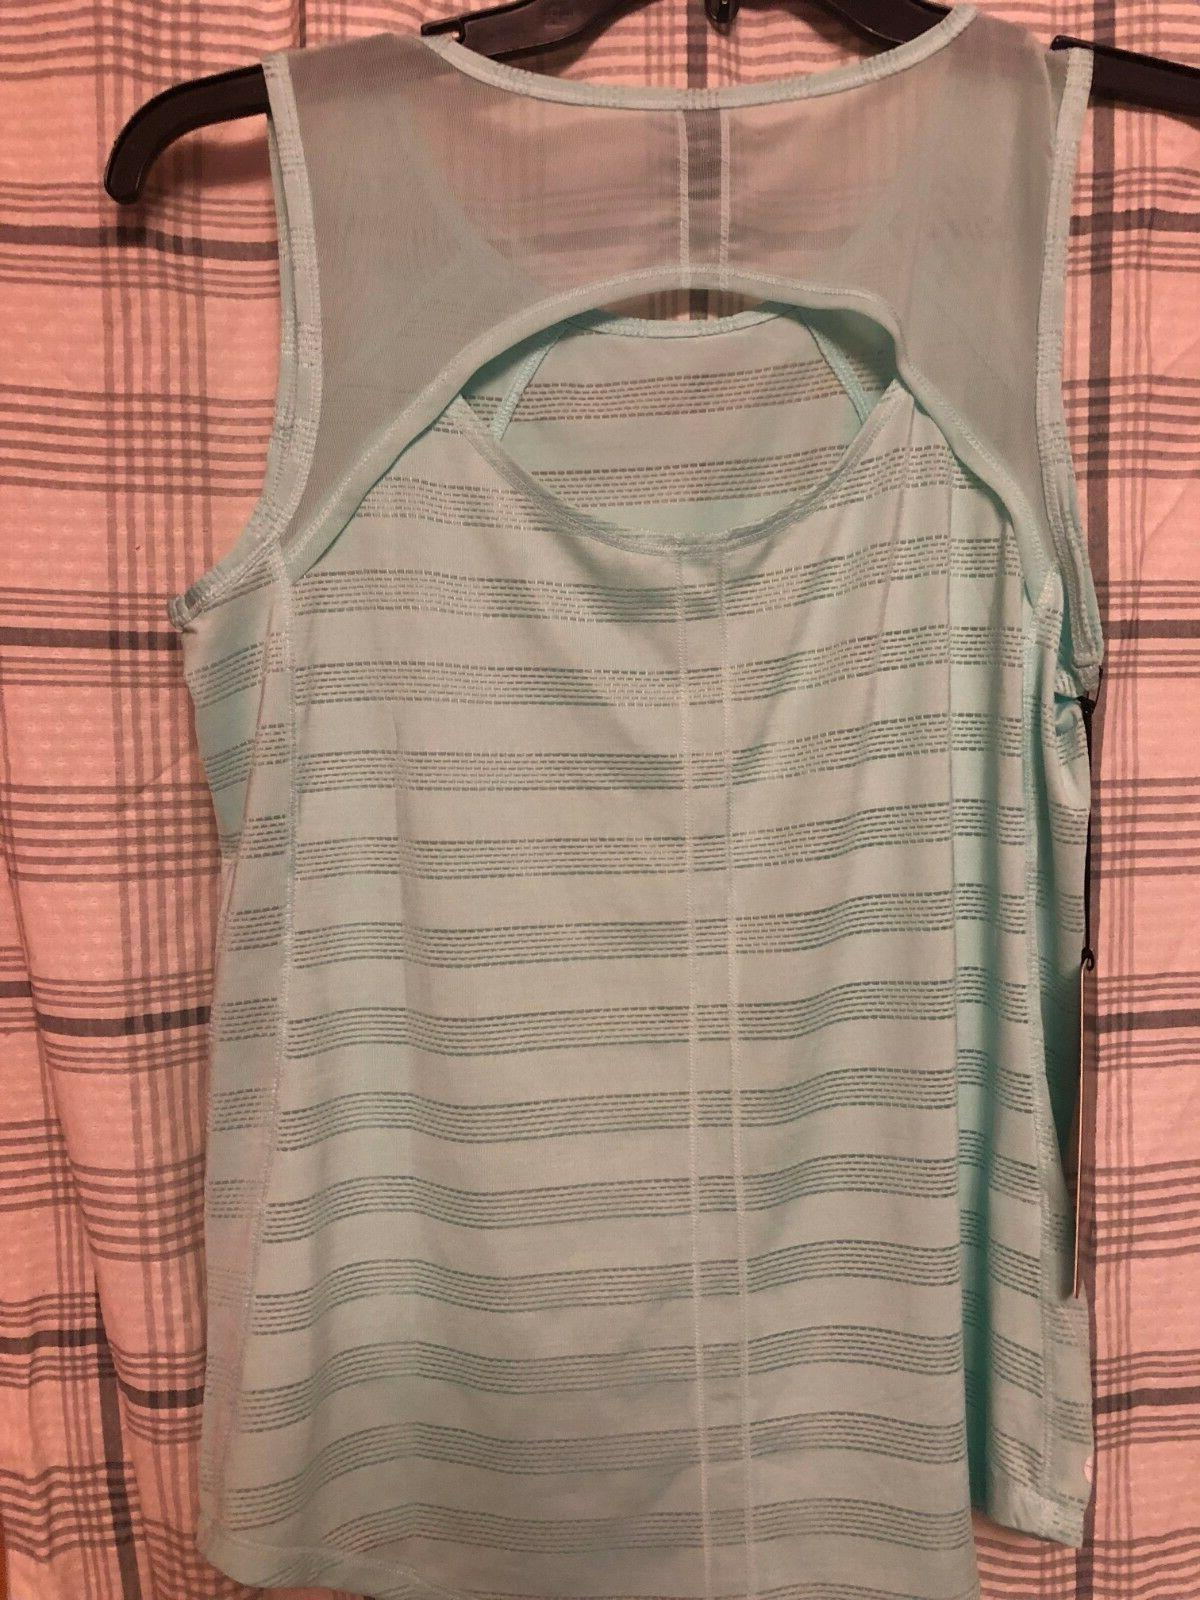 90 Degree by Women's Active Wear Medium NWT